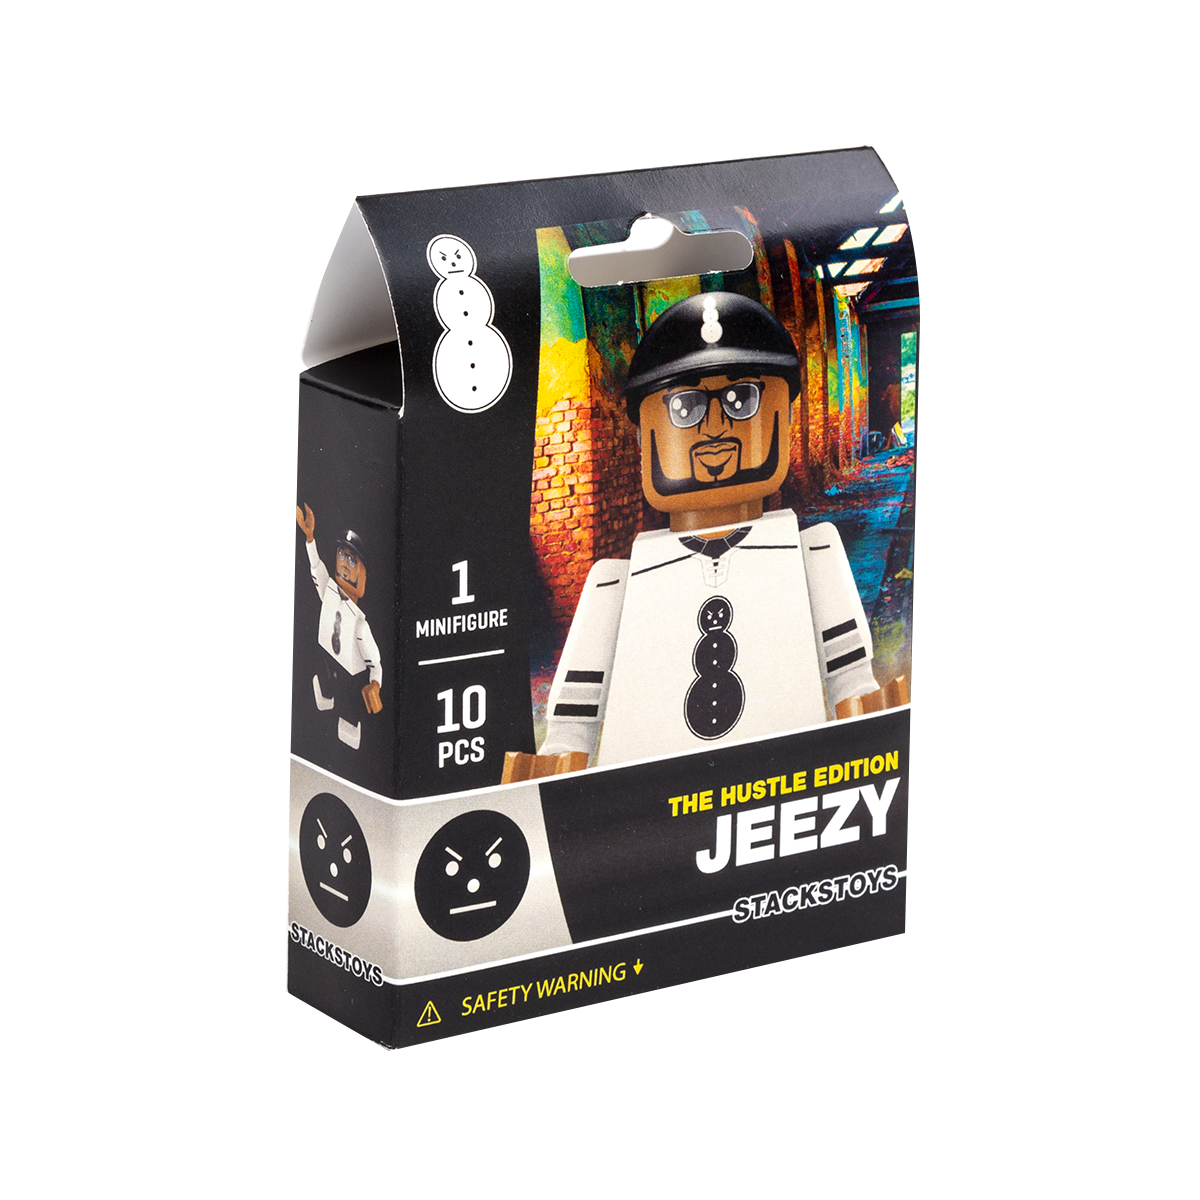 Jeezy The Hustle Edition Minifigure